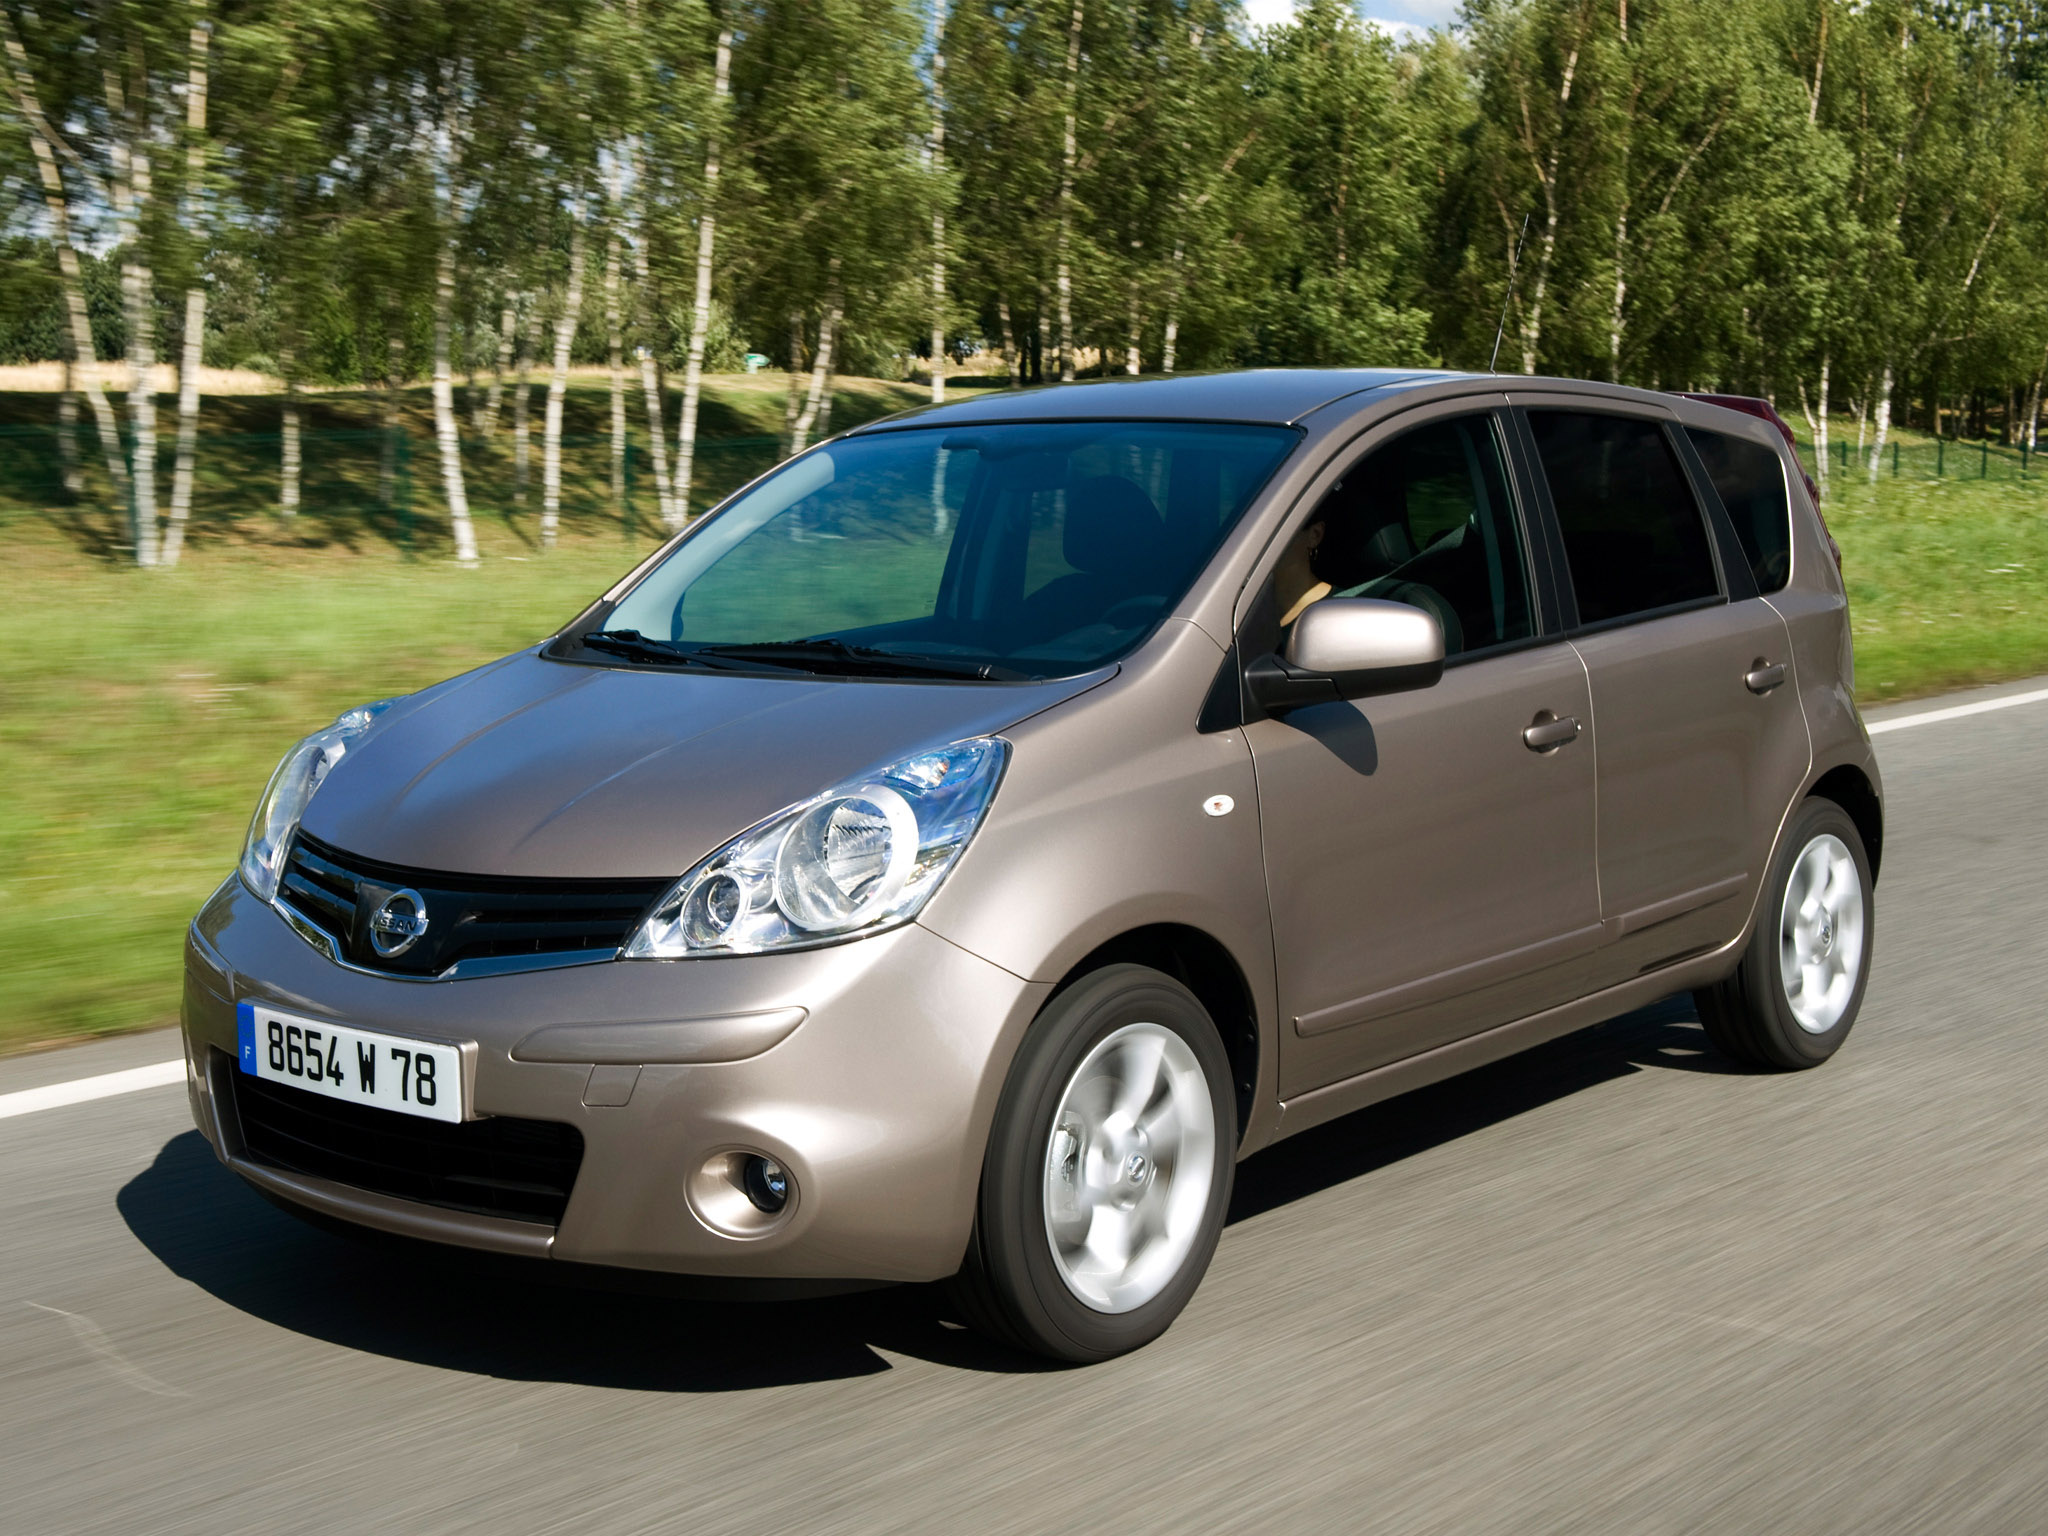 nissan note uk 2008 nissan note uk 2008 photo 13 car in pictures car photo gallery. Black Bedroom Furniture Sets. Home Design Ideas